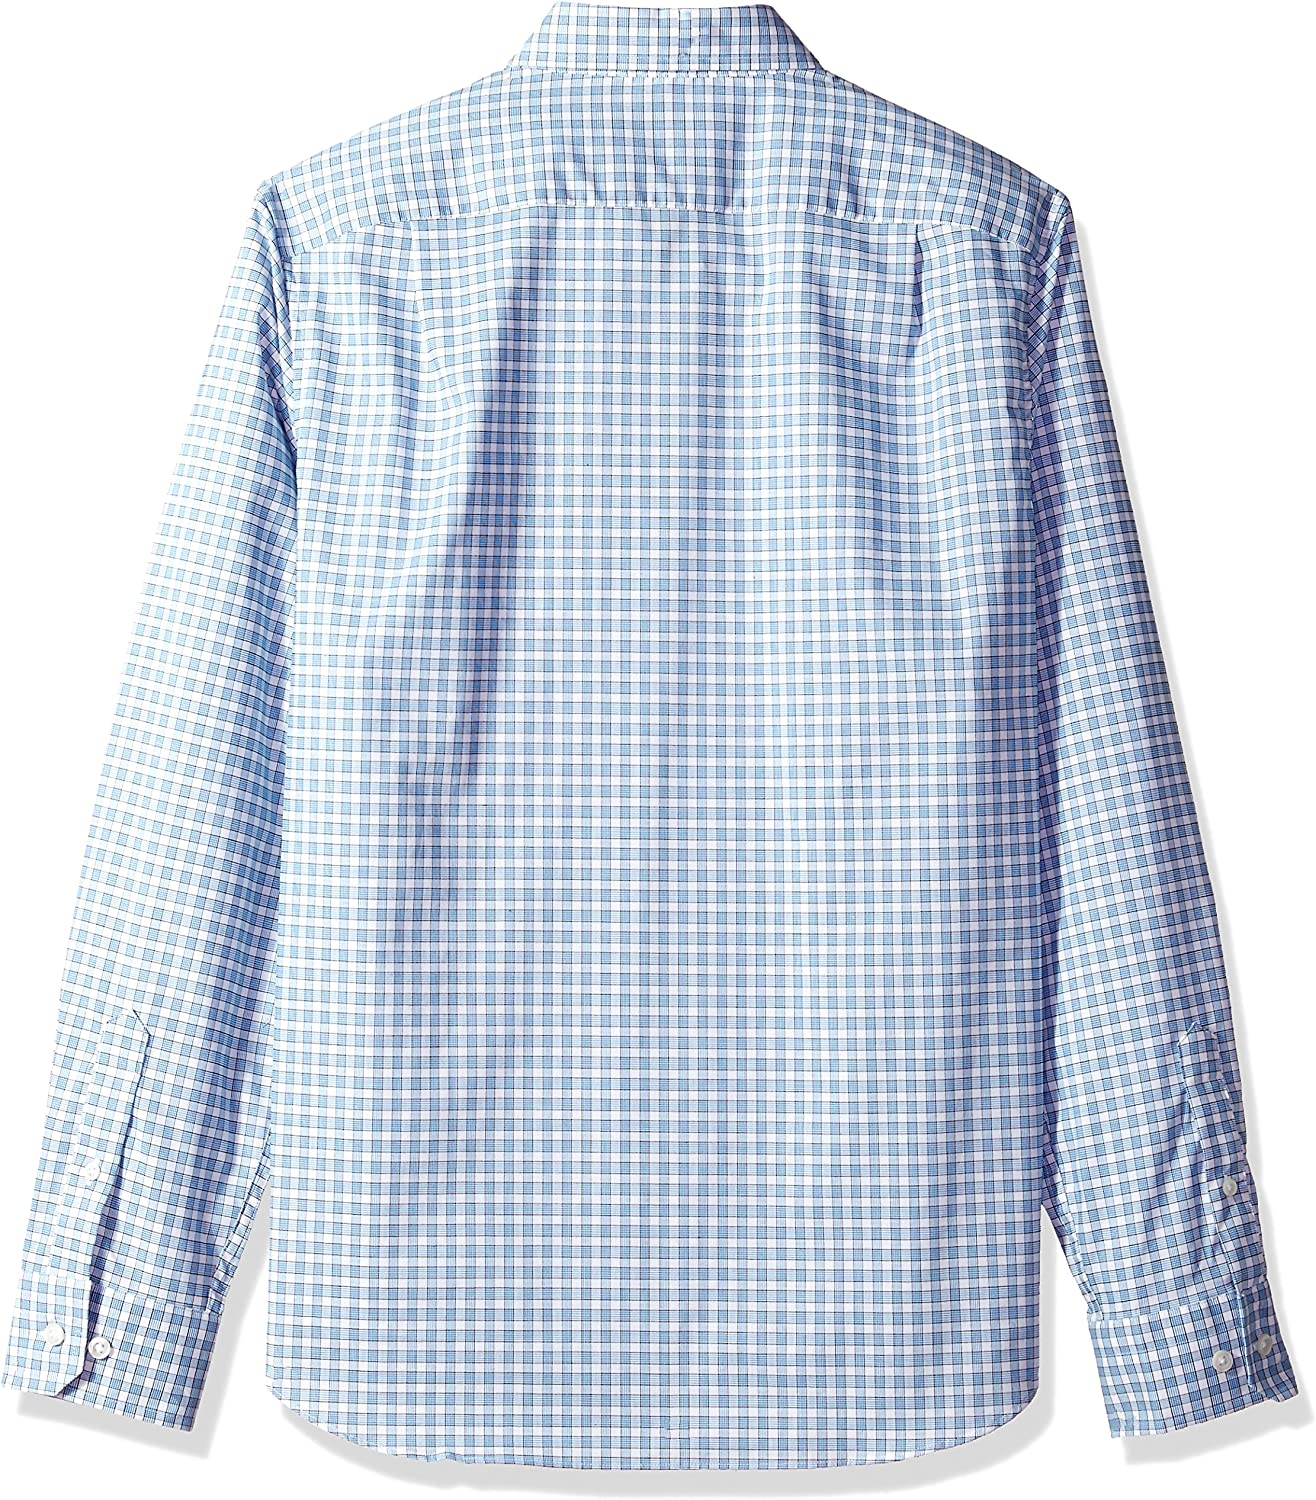 Nautica Classic Fit Long Sleeve Small Plaid Button Down Shirt